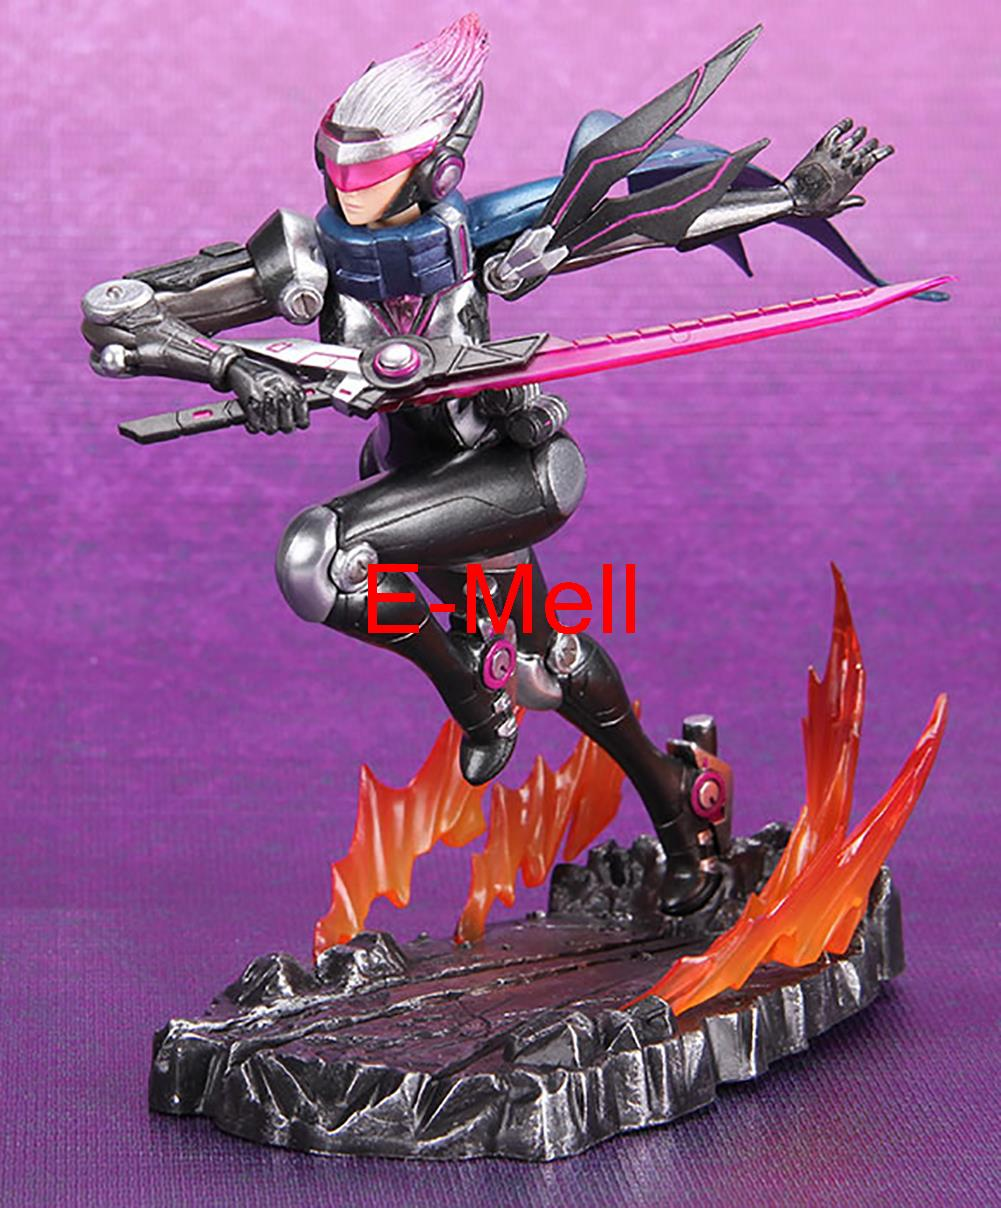 Cosplay 16cm/6.3'' LOL Grand Duelist Fiora PVC GK Garage Kits Action Figures Toys Model made for lol cosplay the loose cannon jinx 24cm 9 5 middle pvc gk action figures toys garage kits standing model